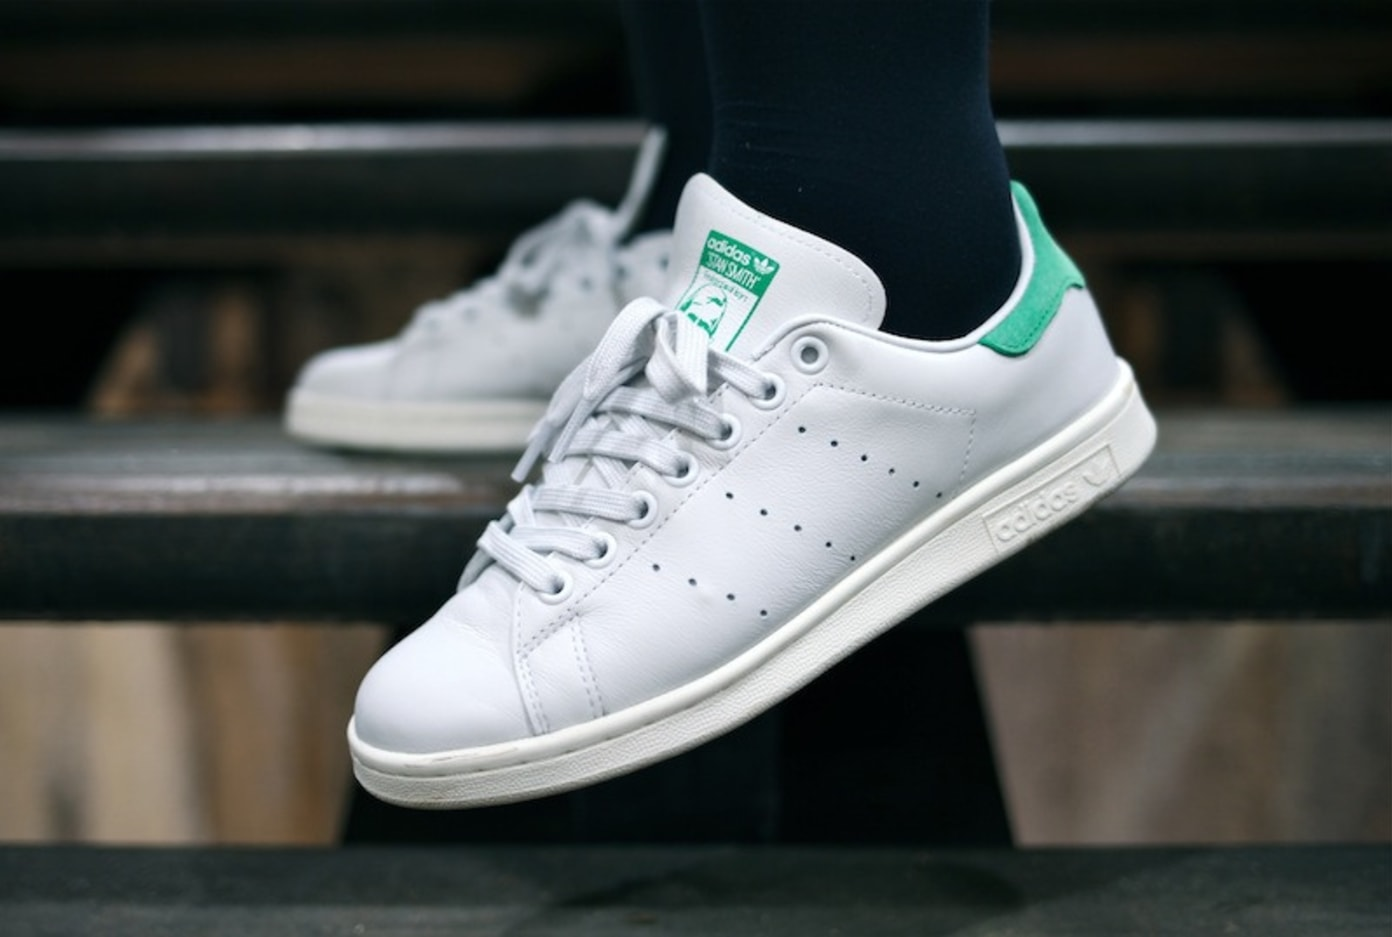 #FactsFriday - The Stan Smith